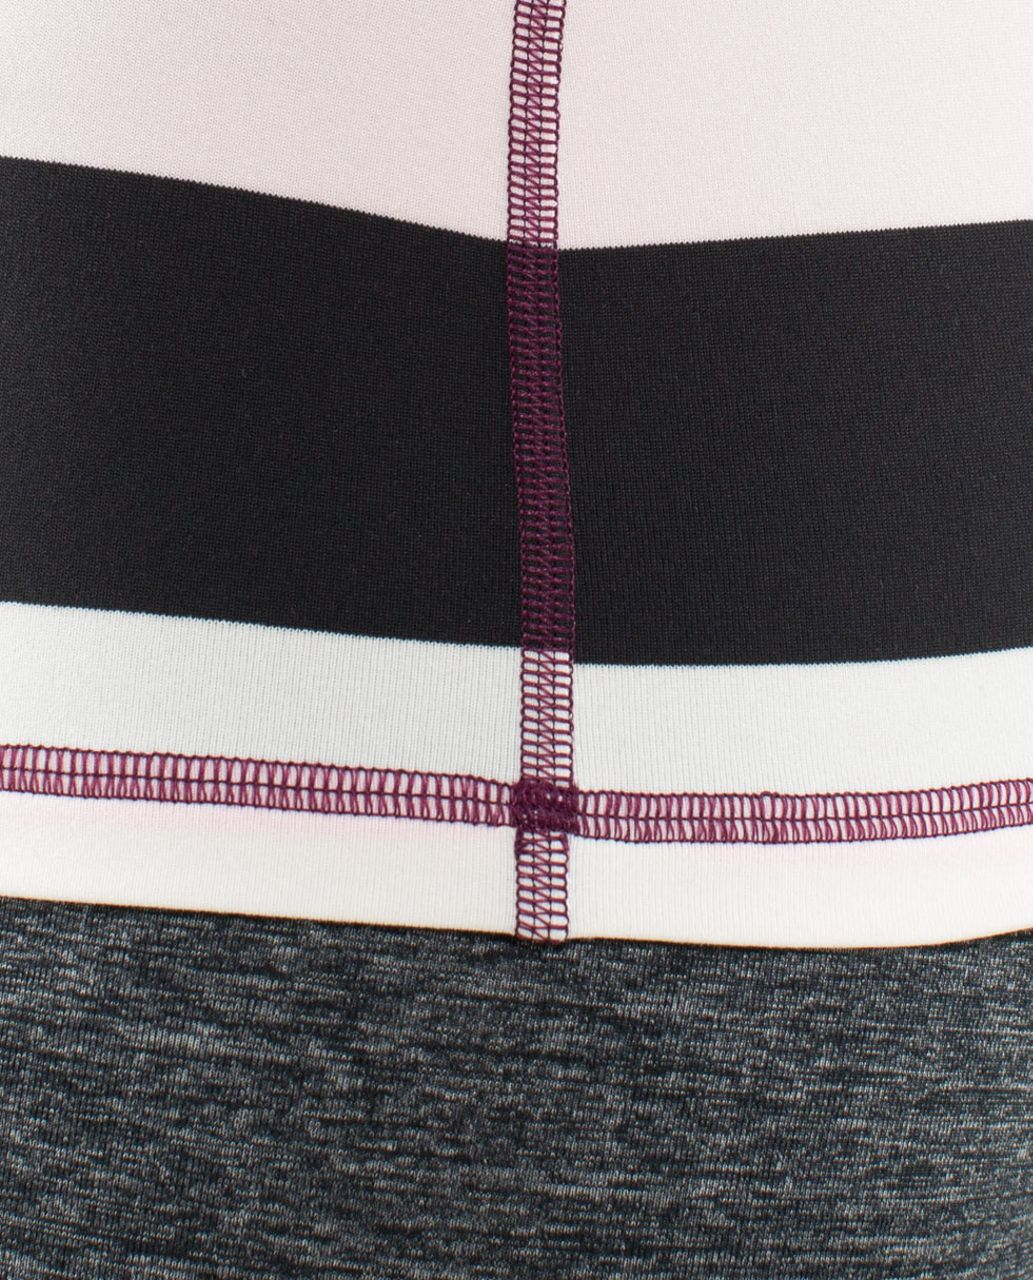 Lululemon Power Y Tank *Luon Light - Pow Stripe Raspberry Glo Light / Plum